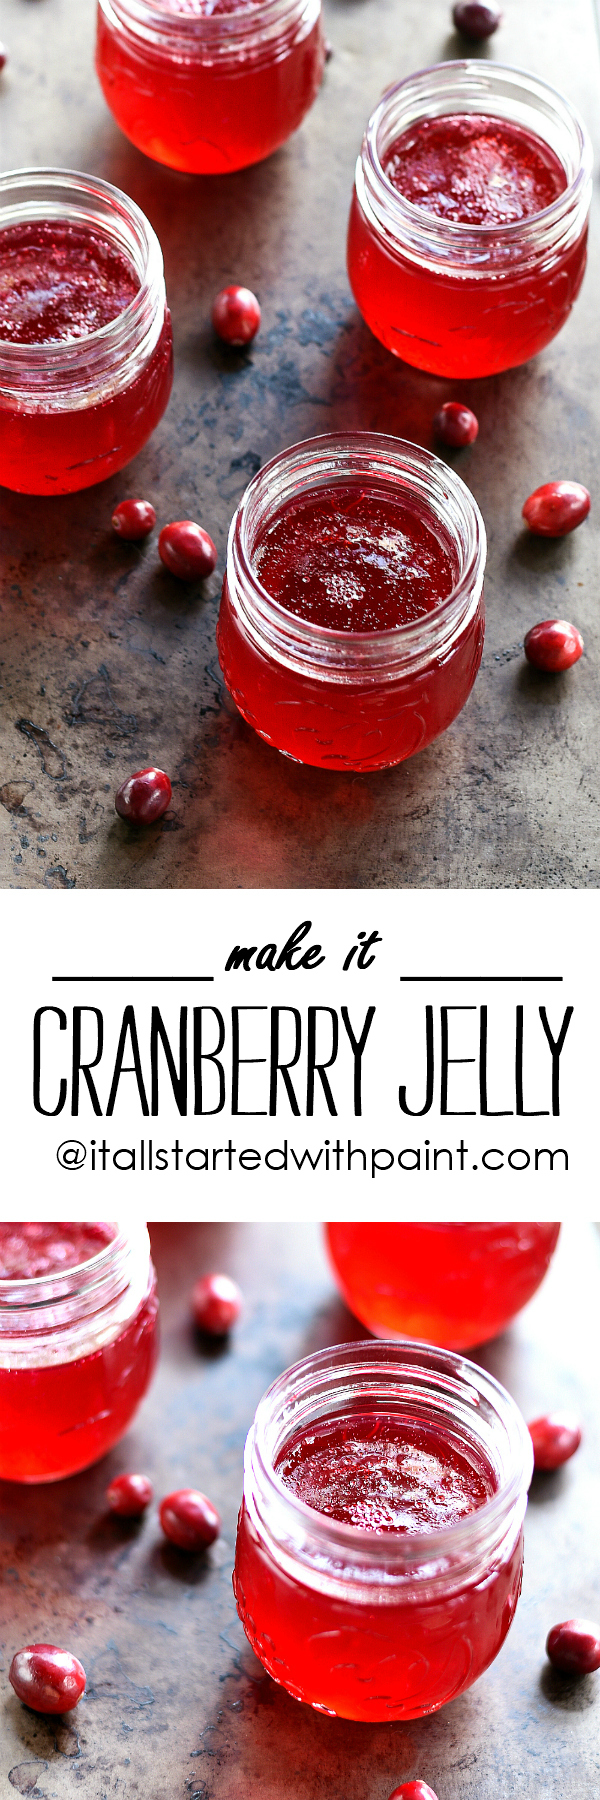 Cranberry-Jelly-Recipe